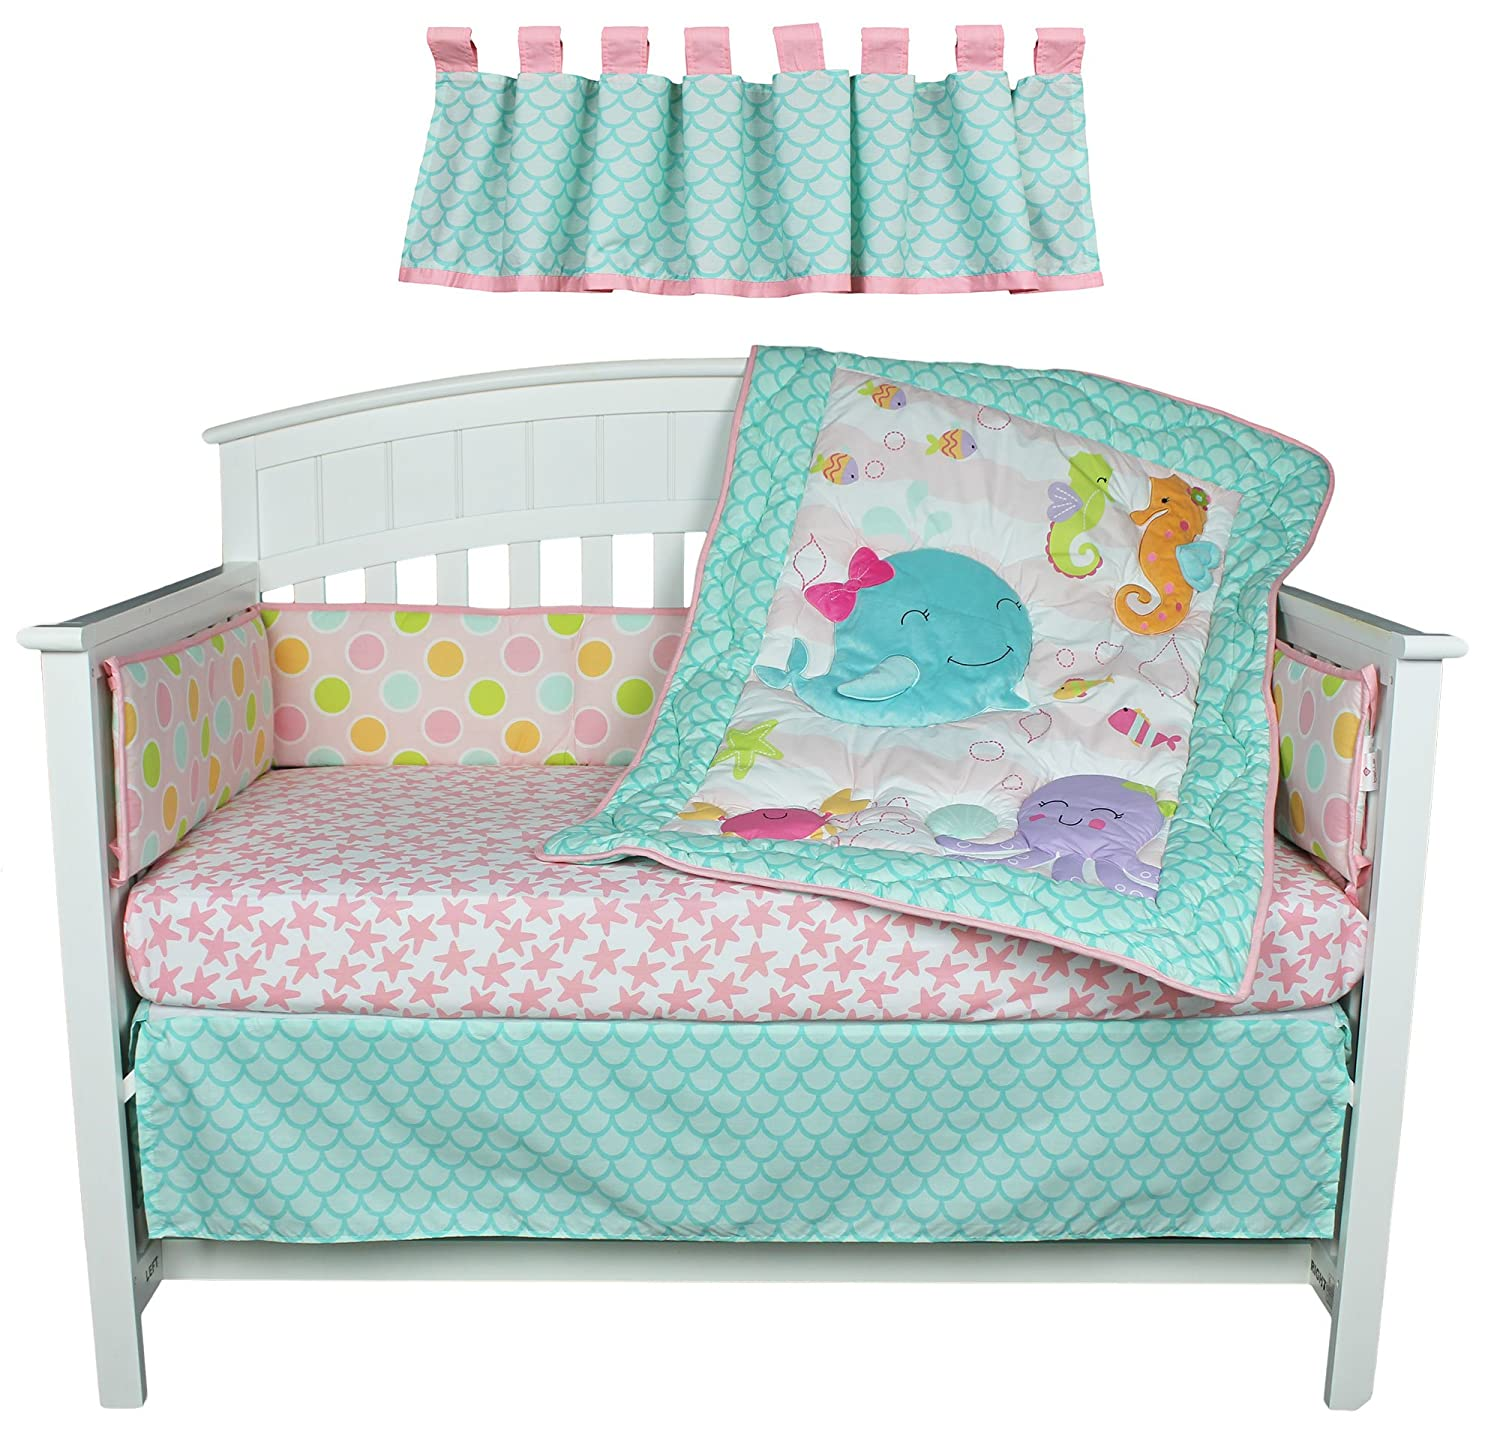 pin nursery google pinterest mermaid crib bedding baby grandbaby girl search bed